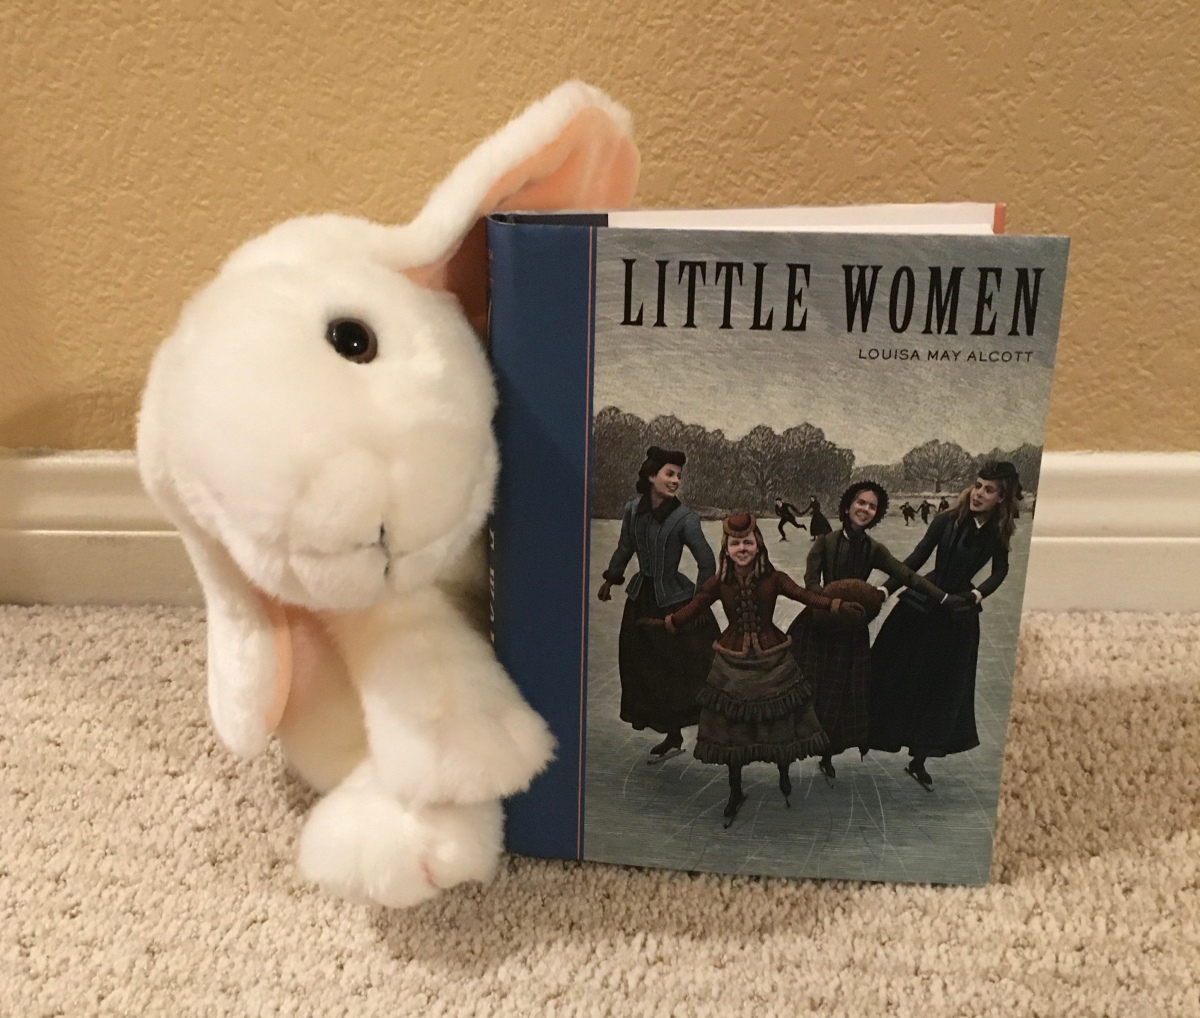 Marshmallow reviews Little Women by Louisa May Alcott